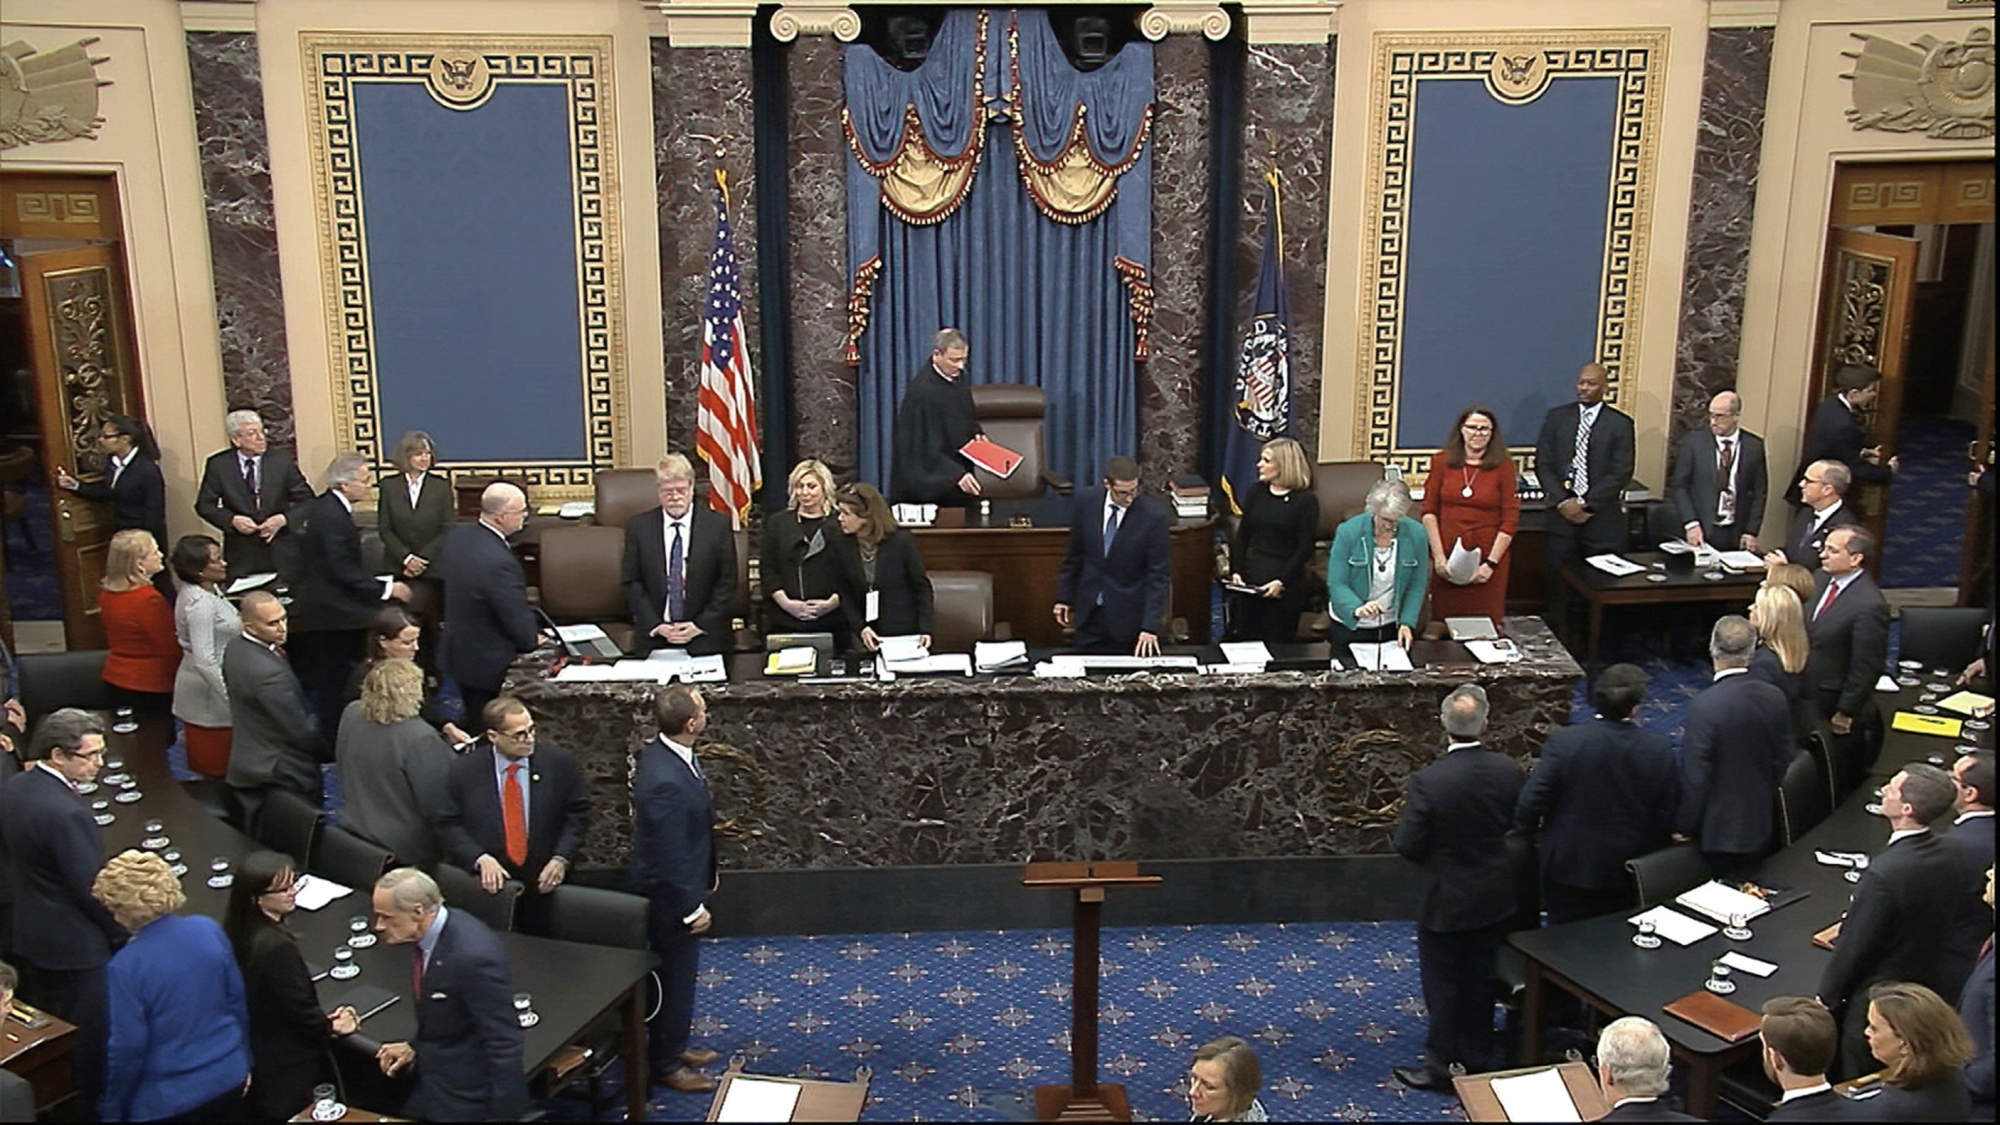 Not guilty: Senate acquits Trump of impeachment charges   WTOP